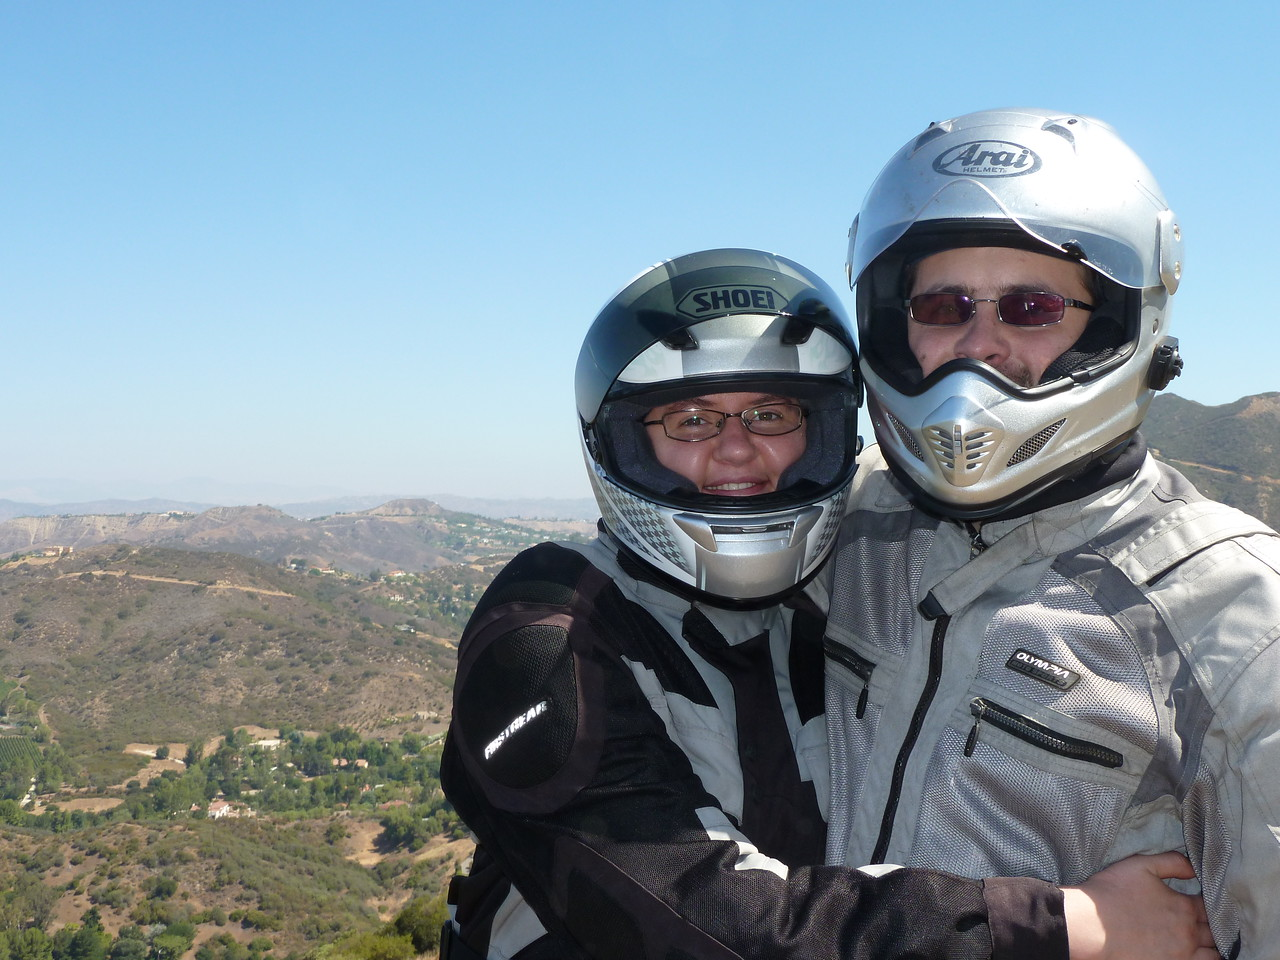 Ted and Faye near Mulholland, Santa Monica Mountains